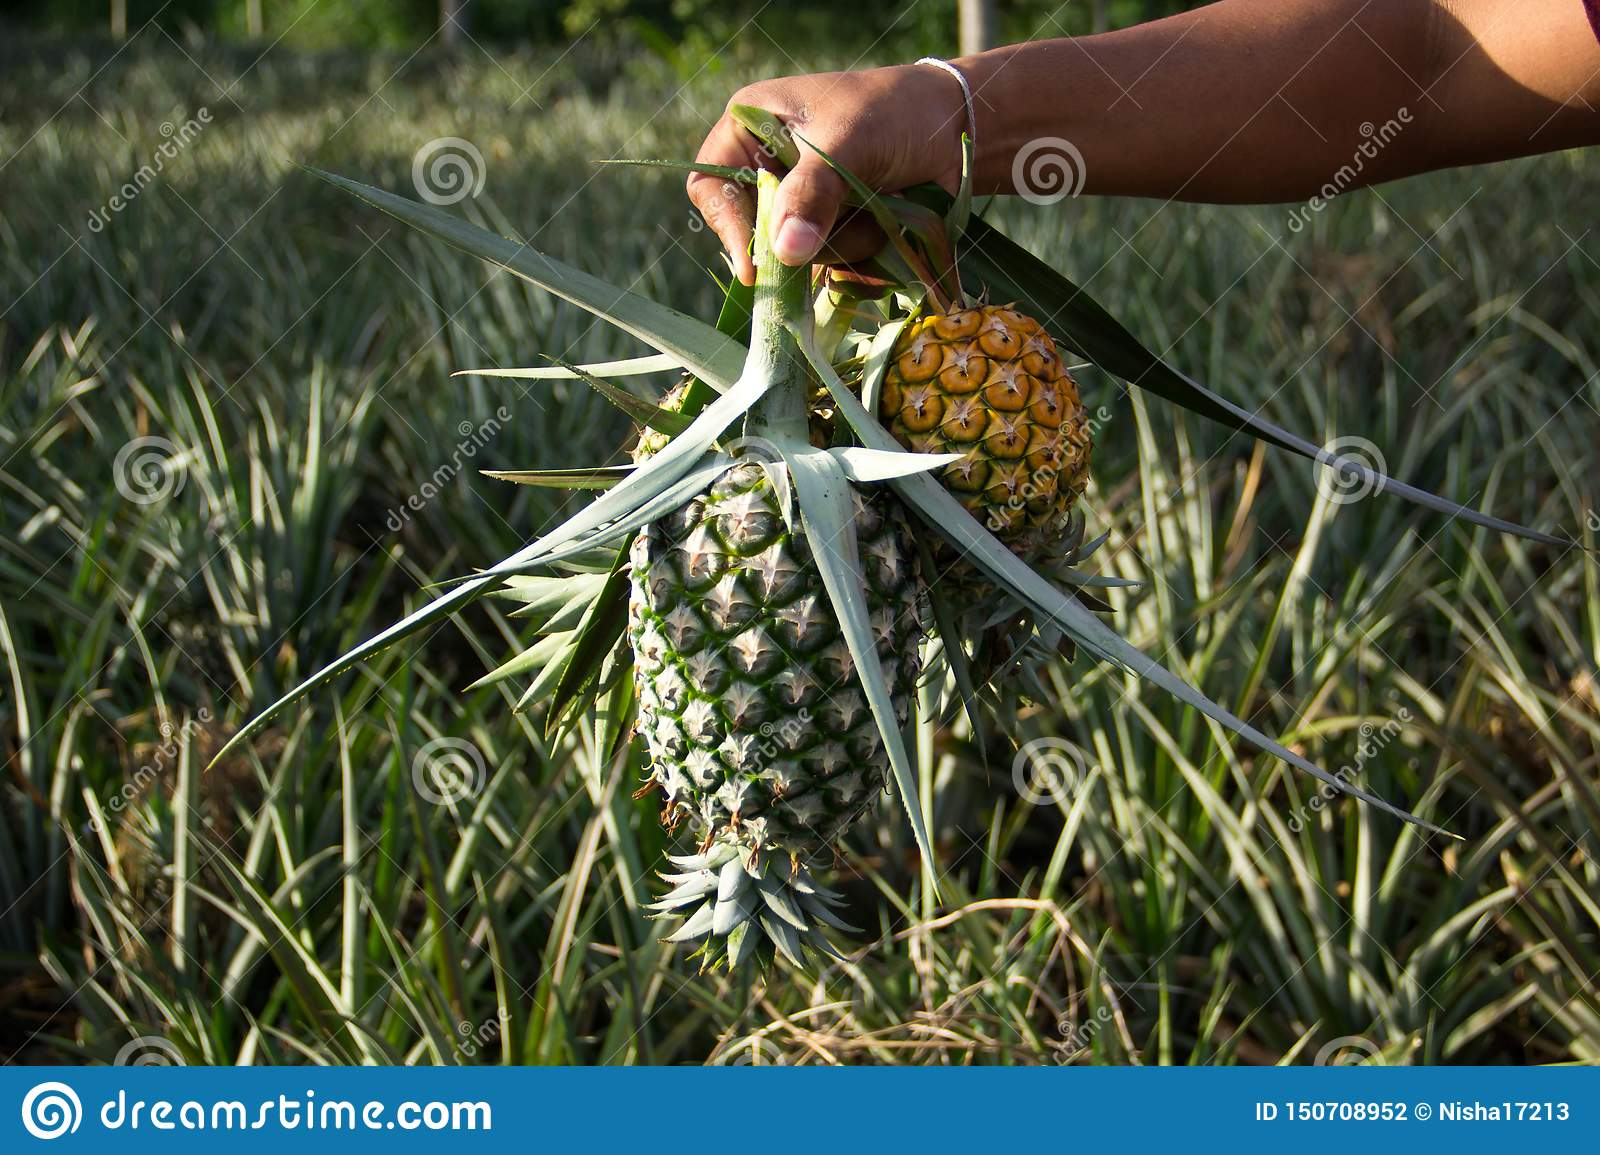 Keep the pineapple cooked at the garden